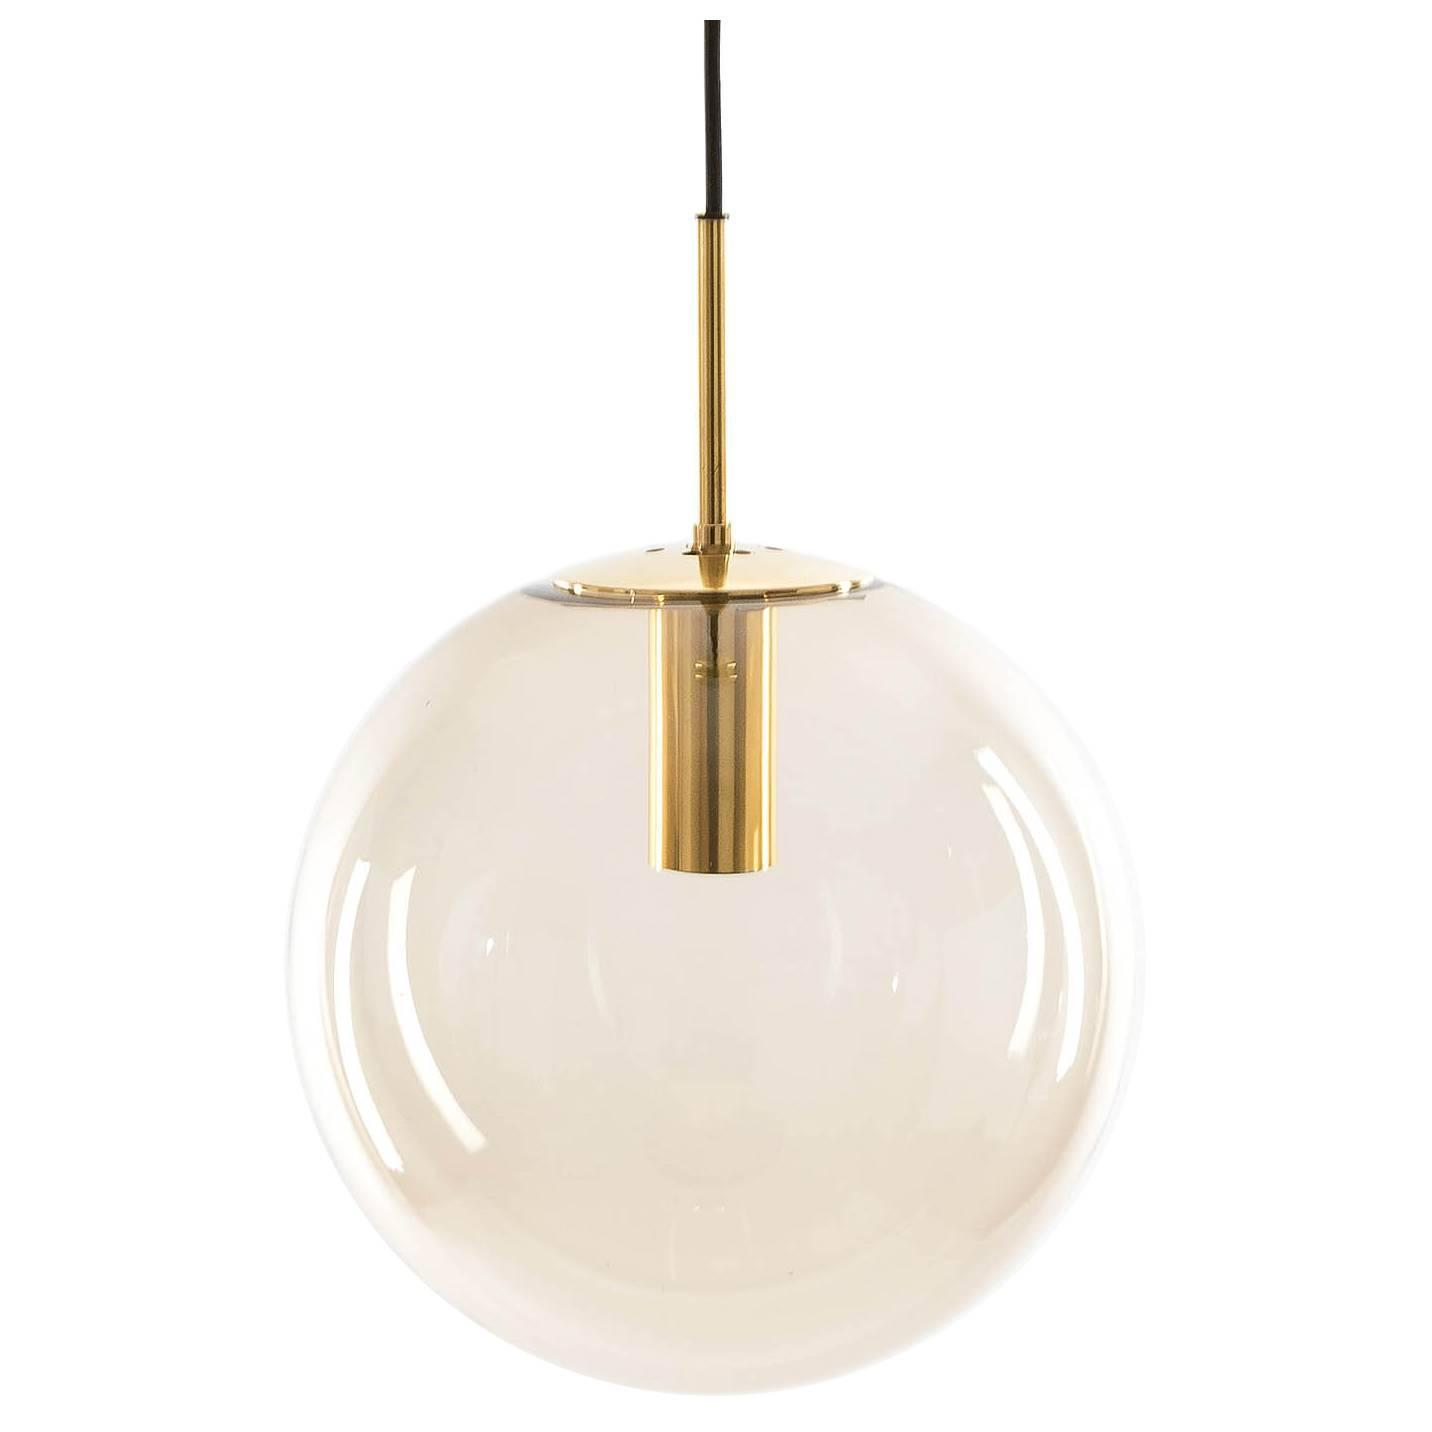 One of Ten Limburg Globe Pendant Lights Brass and Smoked Glass For Sale at  1stdibs - One Of Ten Limburg Globe Pendant Lights Brass And Smoked Glass For